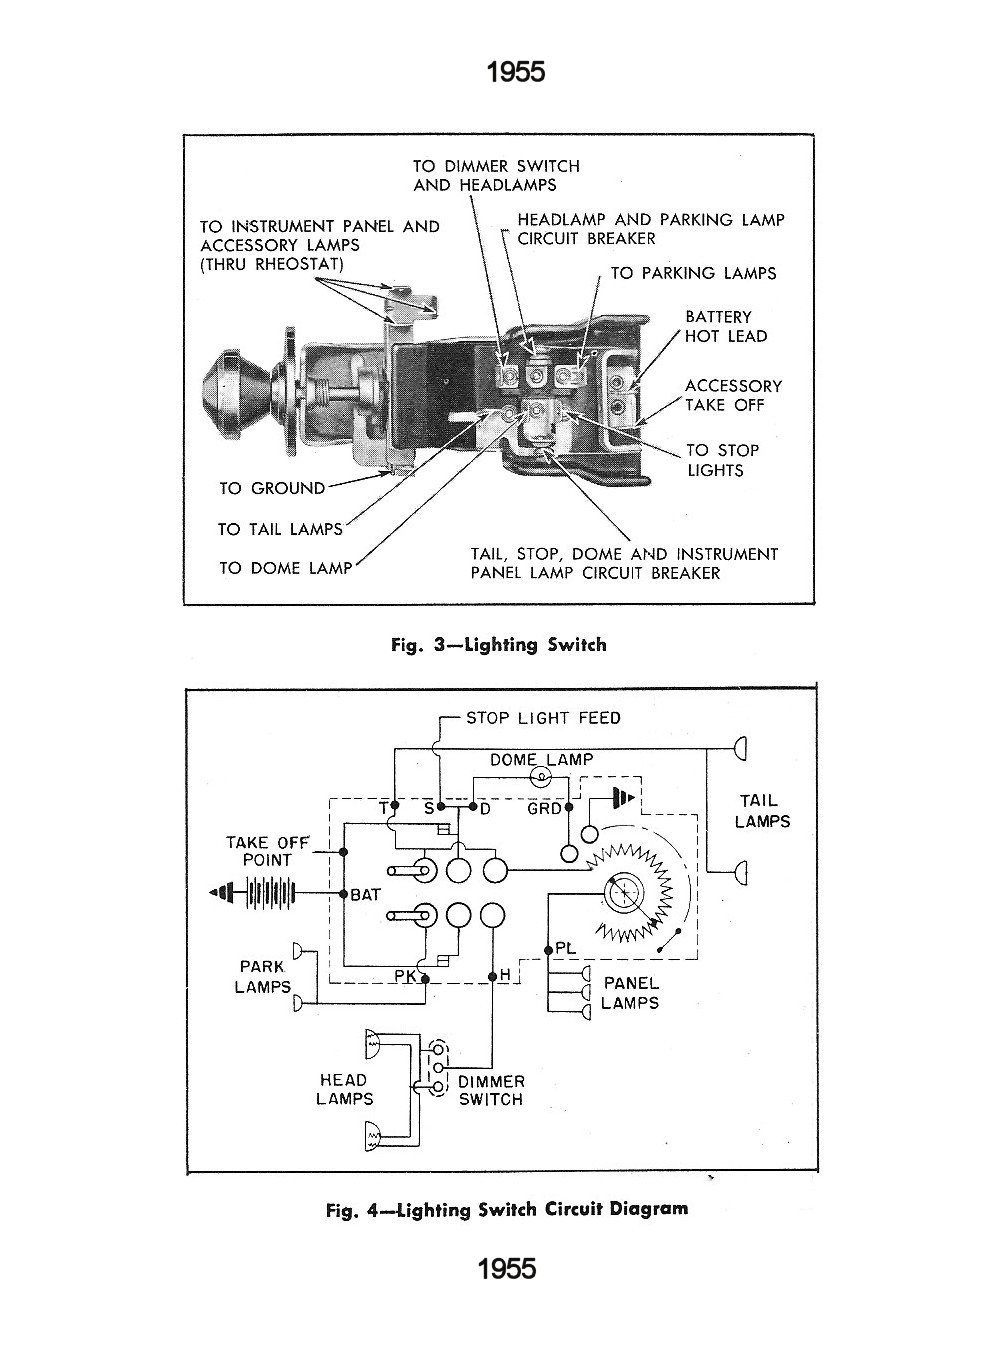 55csm1204a chevy wiring diagrams 1984 chevy truck headlight wiring diagram at readyjetset.co